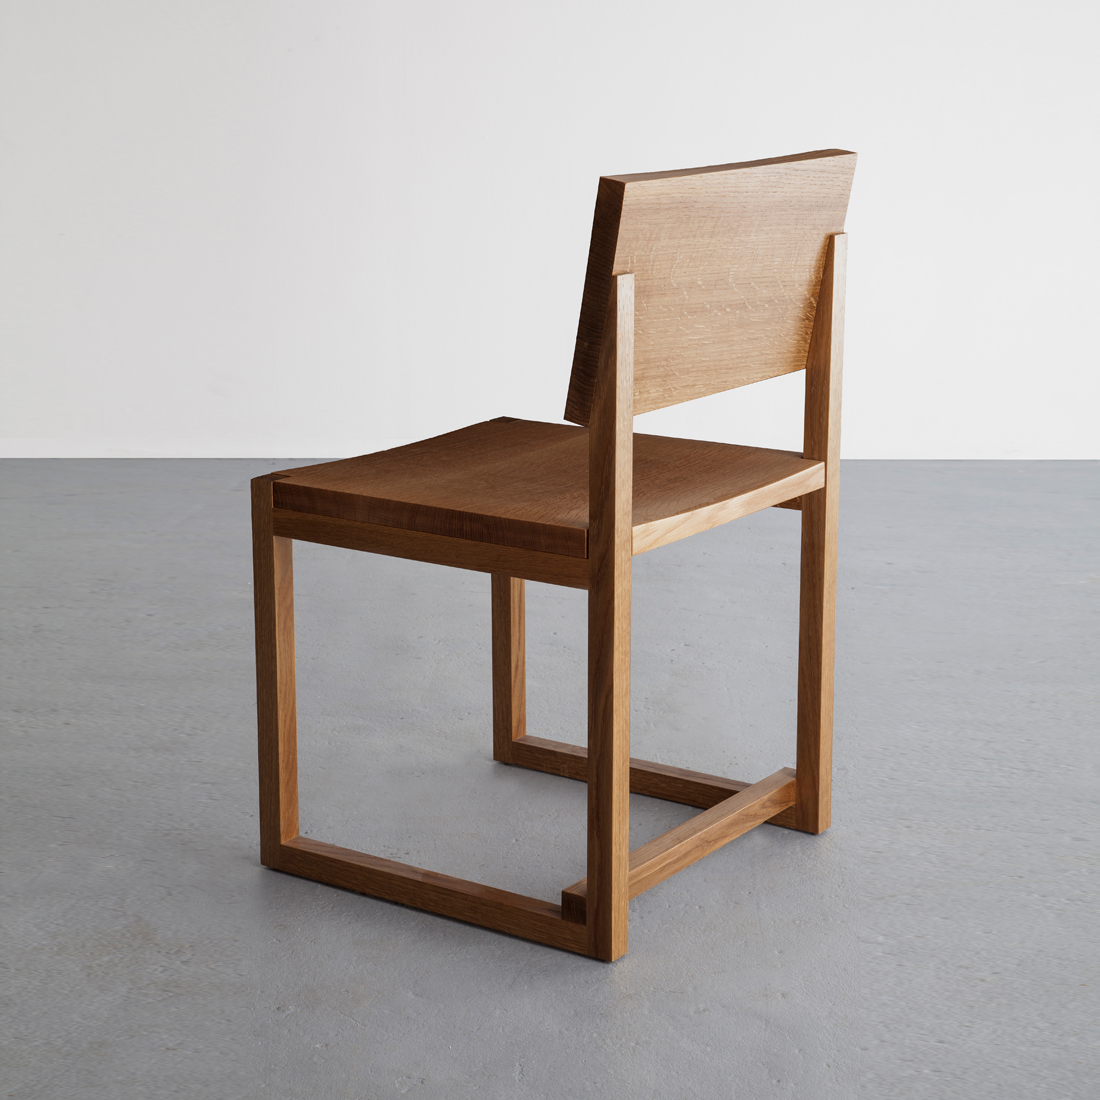 SQ1 Dining Chair in white oak by David Gaynor Design